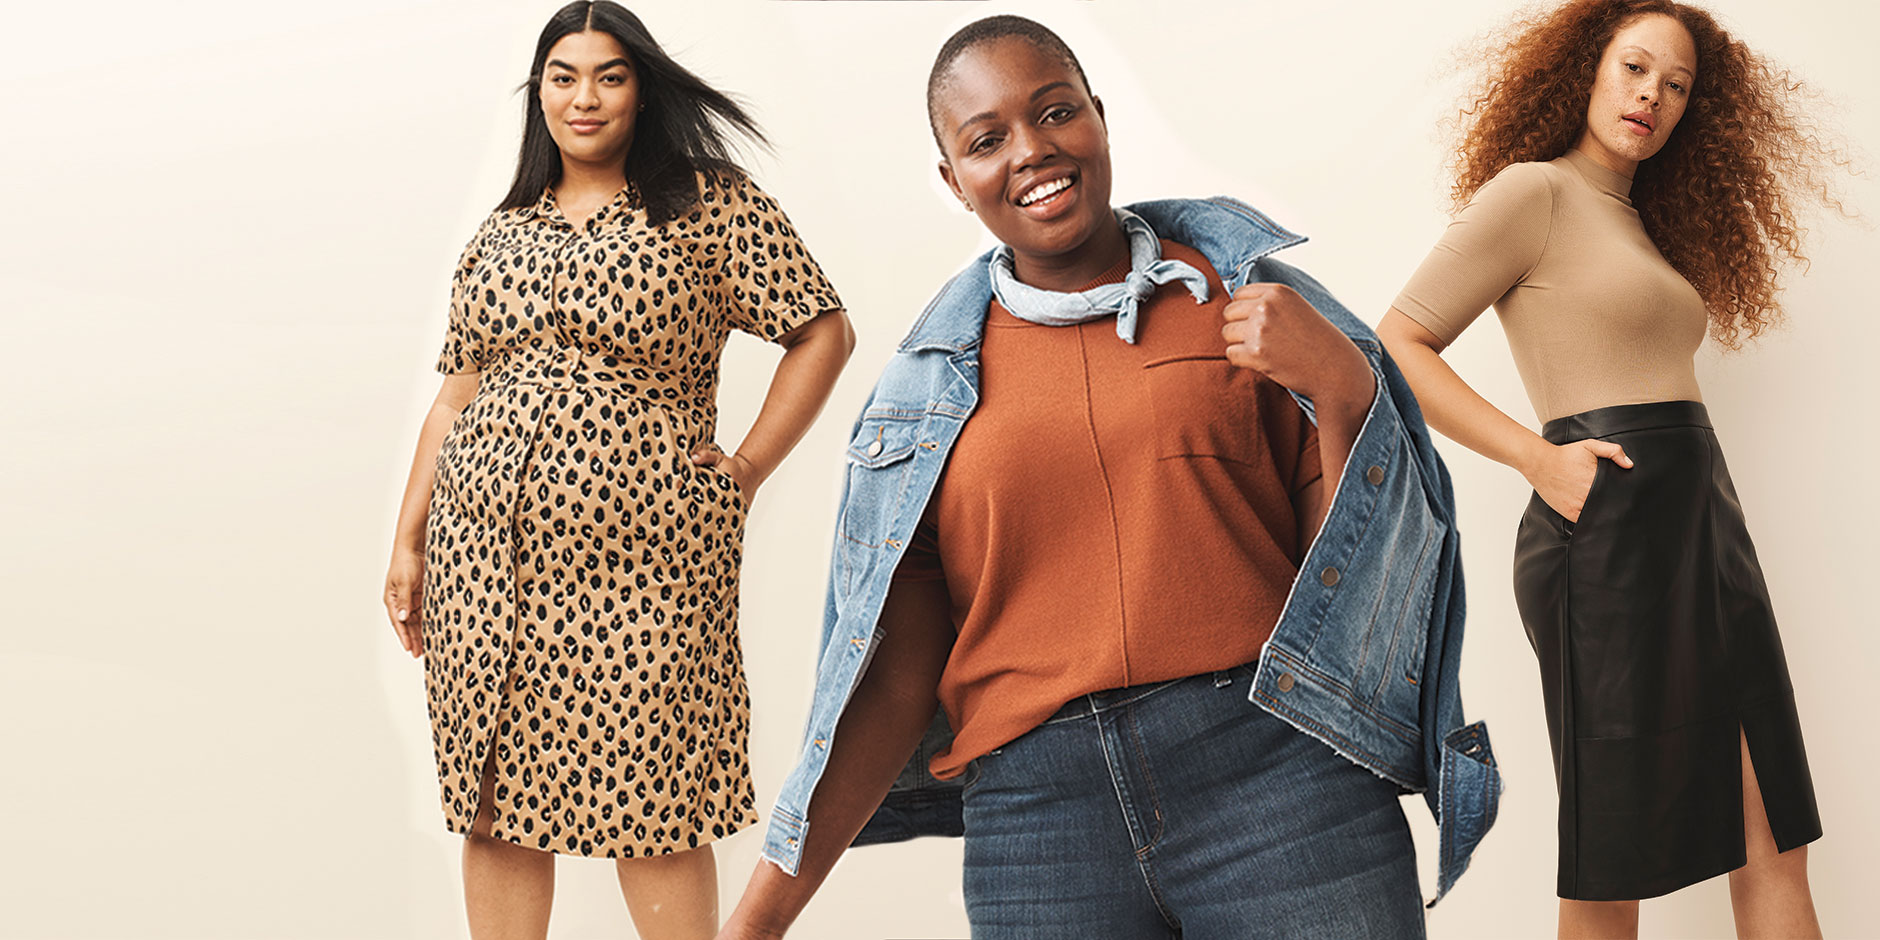 Three women model new fall fashion from Target owned brands